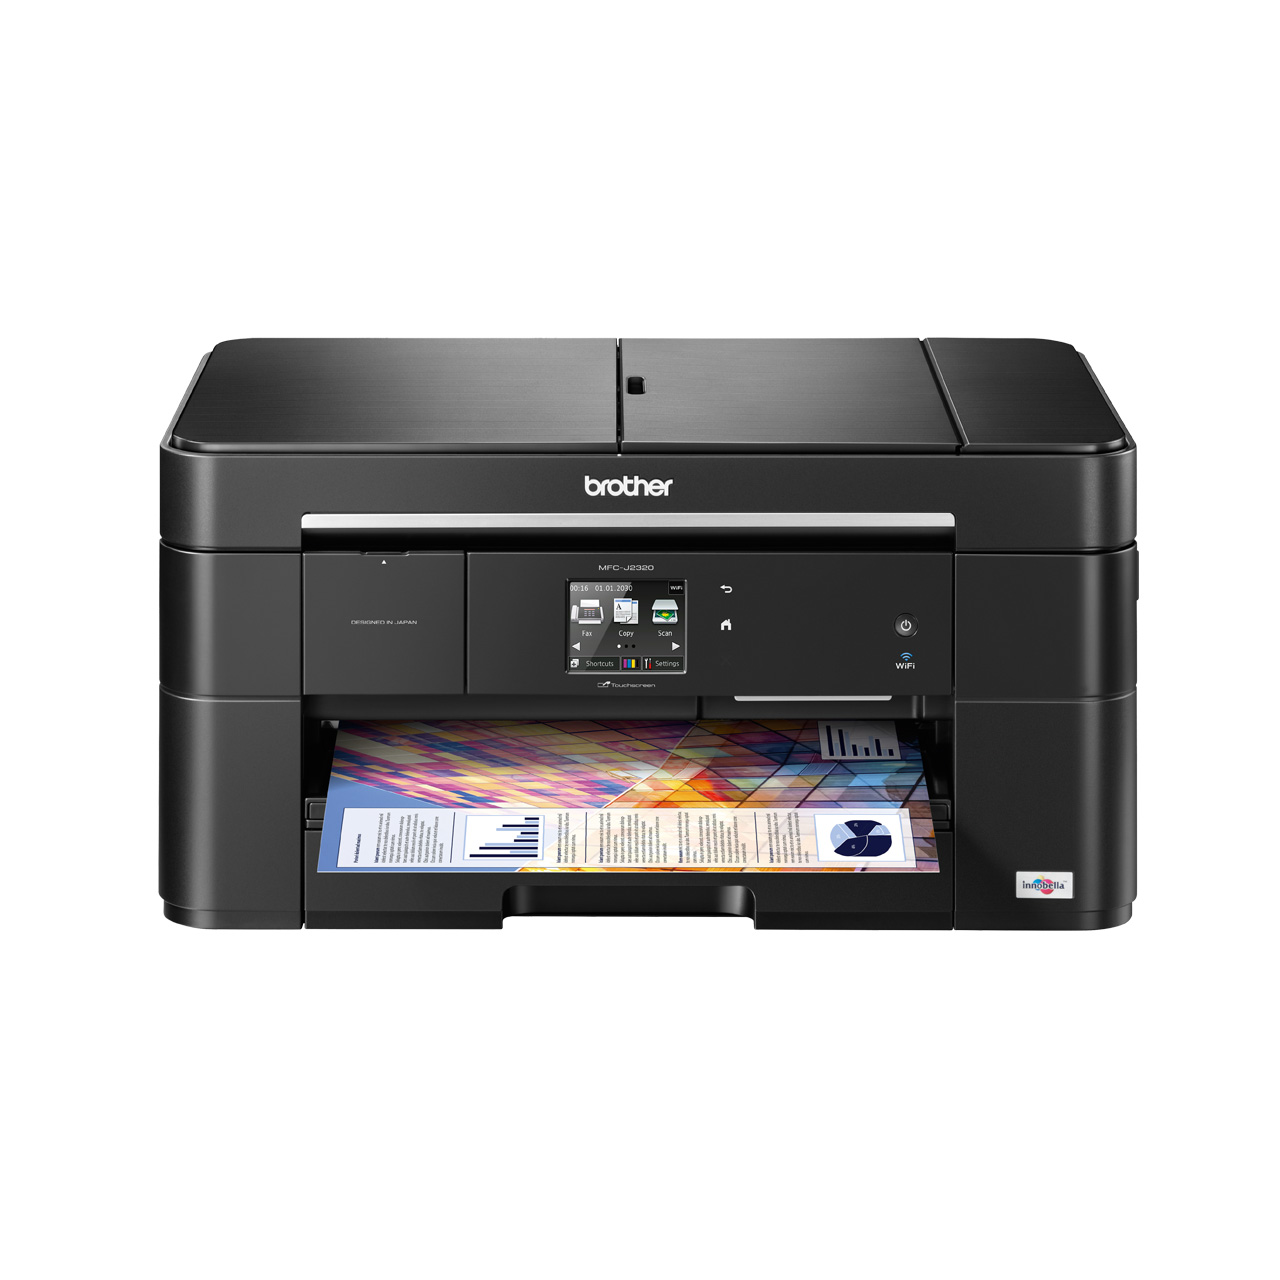 with open scanner multiple banner workforce flatbed photo ds document feeder duplex ho p adf assetdescr photos scanners for epson use